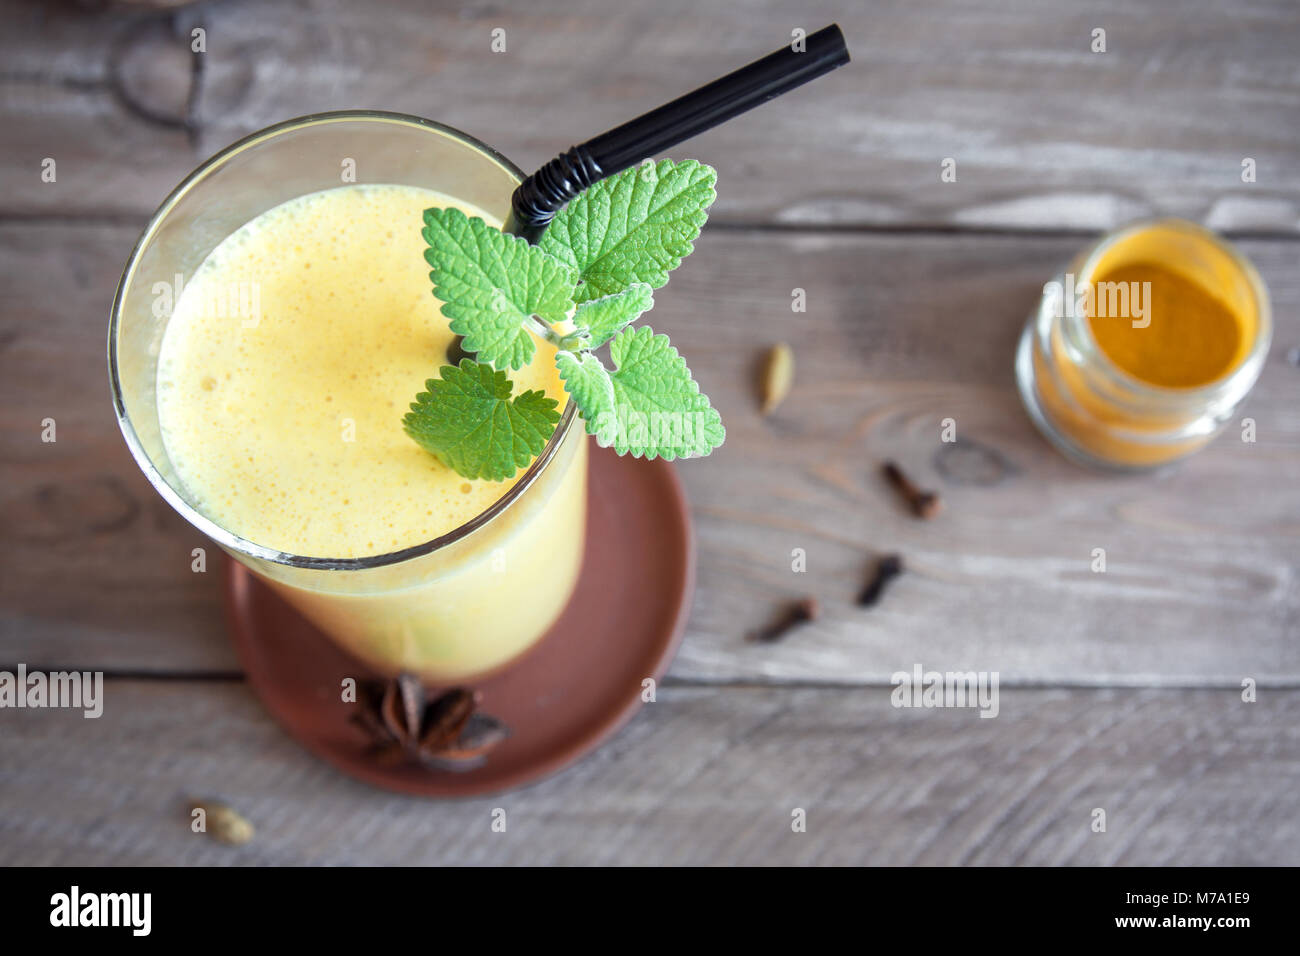 Turmeric Lassie or lassi in glass - Healthy Probiotic Indian cold drink made up of curd (yogurt), milk, spices and - Stock Image